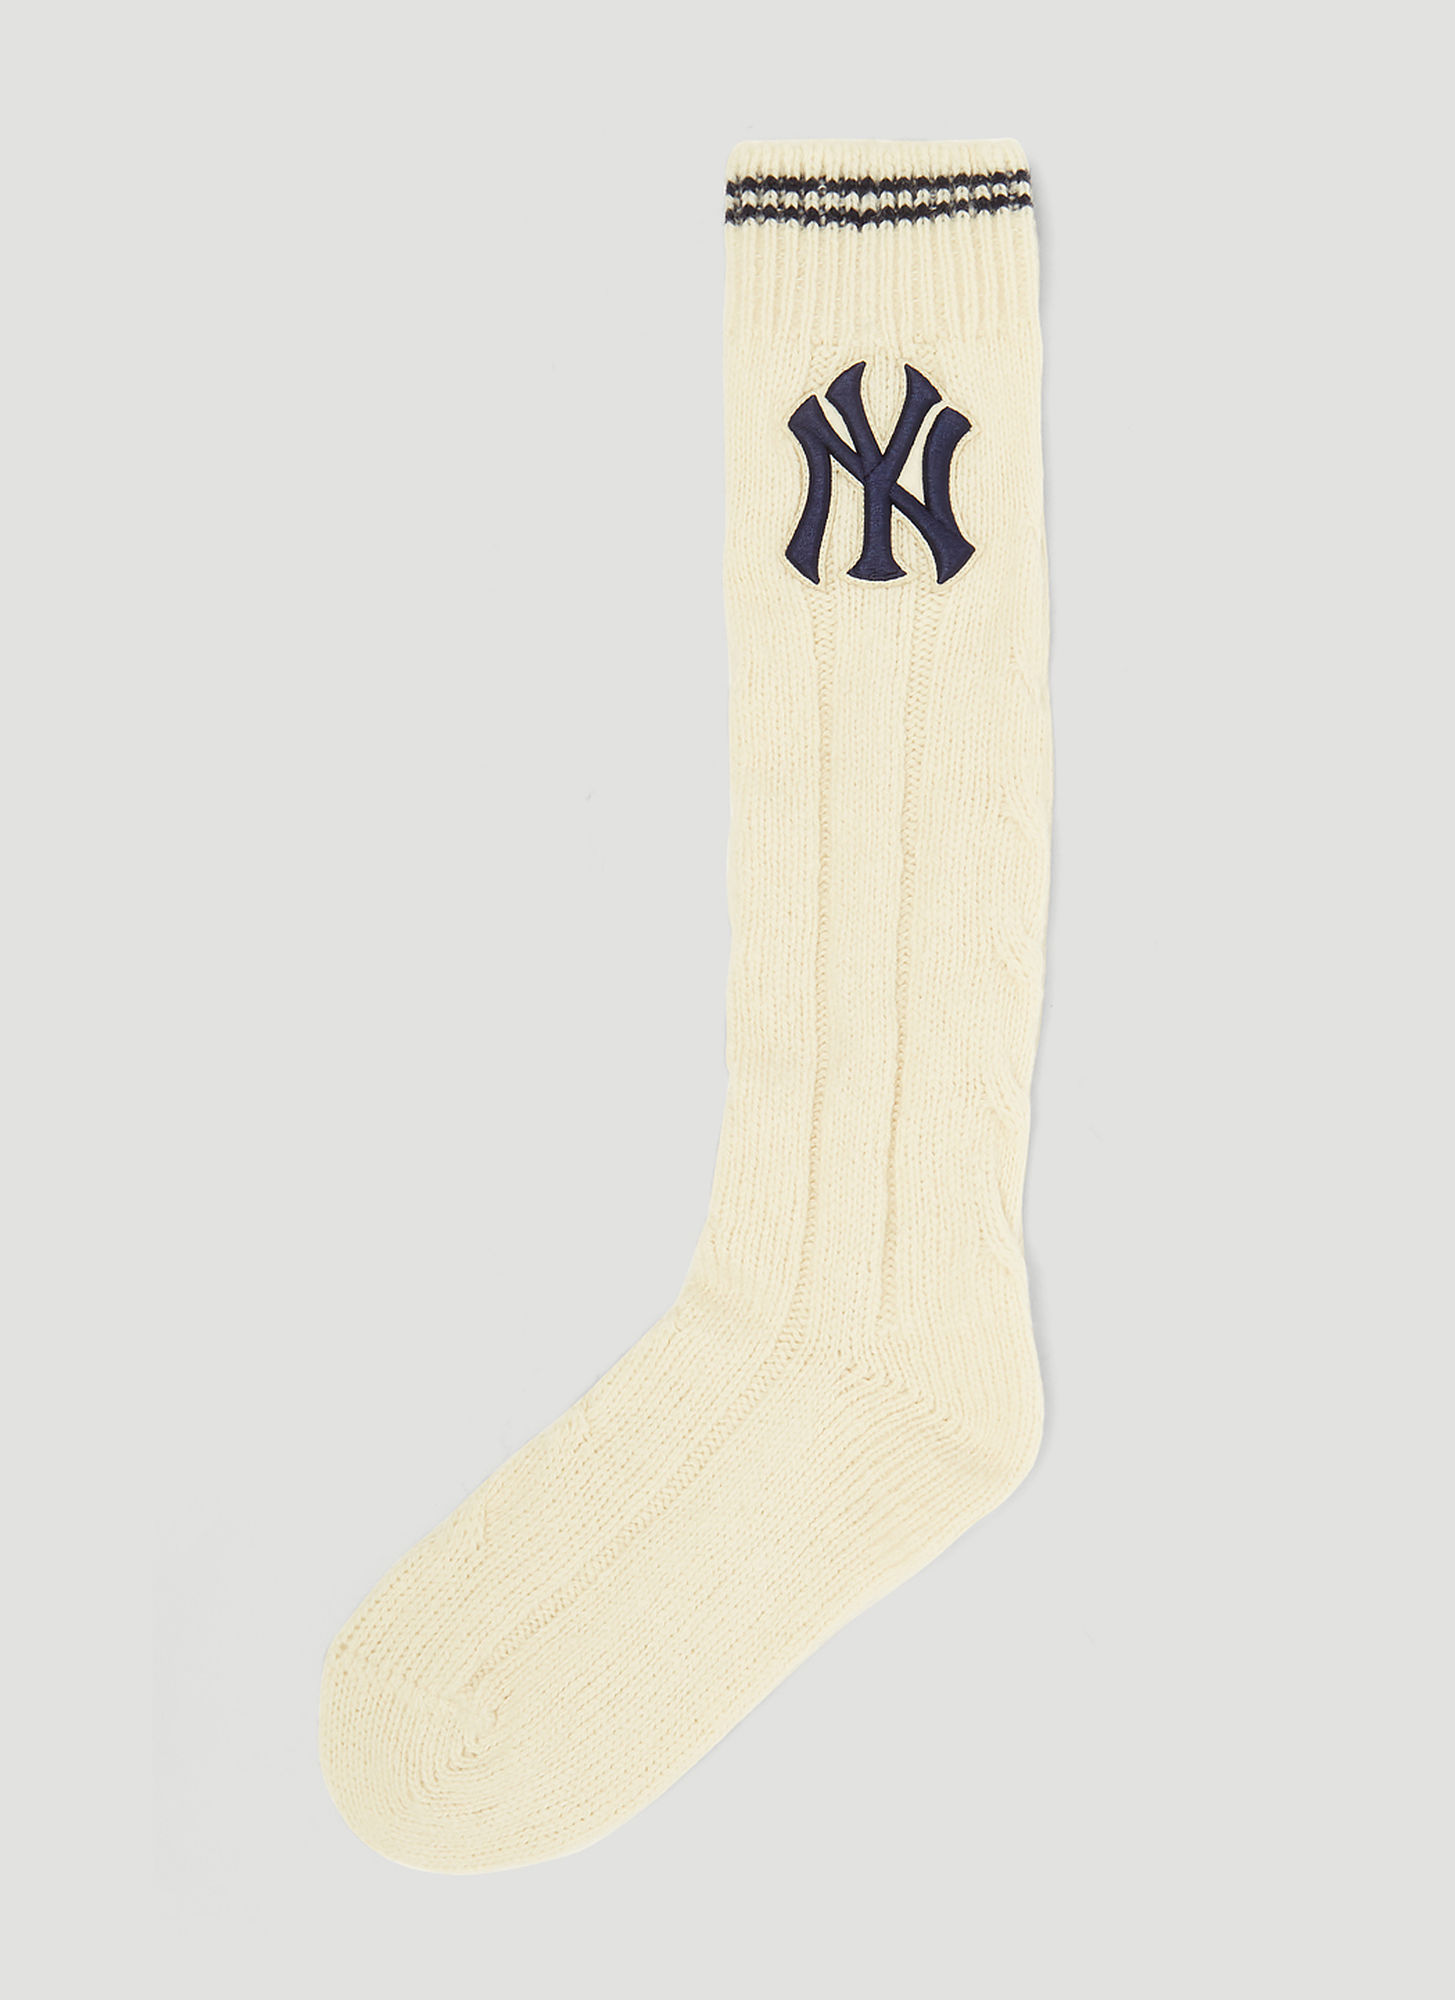 30903a500 Gucci NY Yankees Ribbed Wool Socks in Cream size M